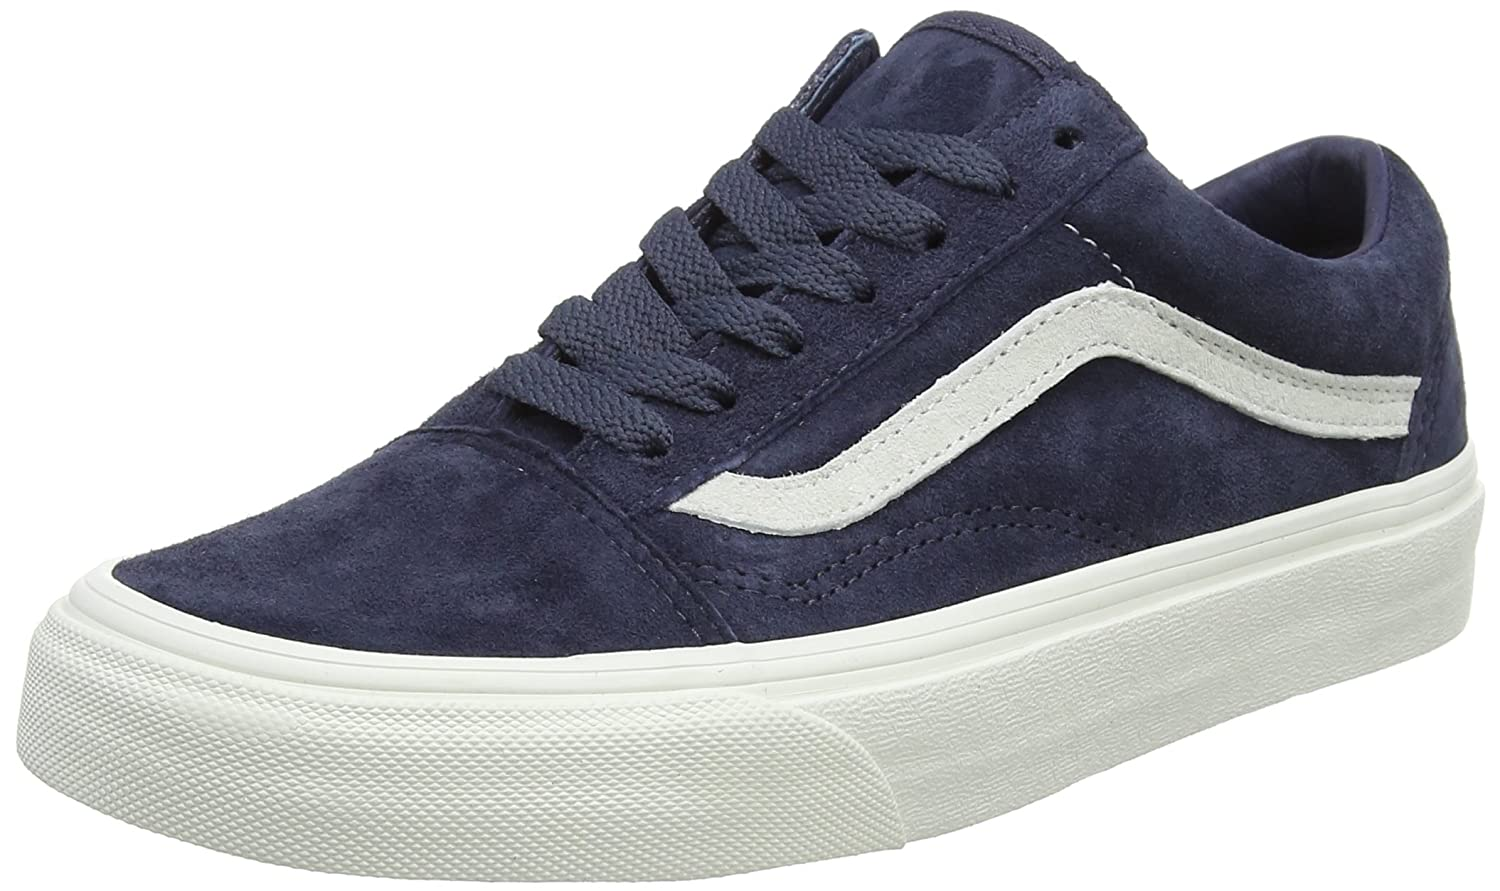 Vans Old Skool Unisex Adults' Low-Top Trainers B073WHFCX9 9 D(M) US / 10.5 B(M) US|Parisian Night